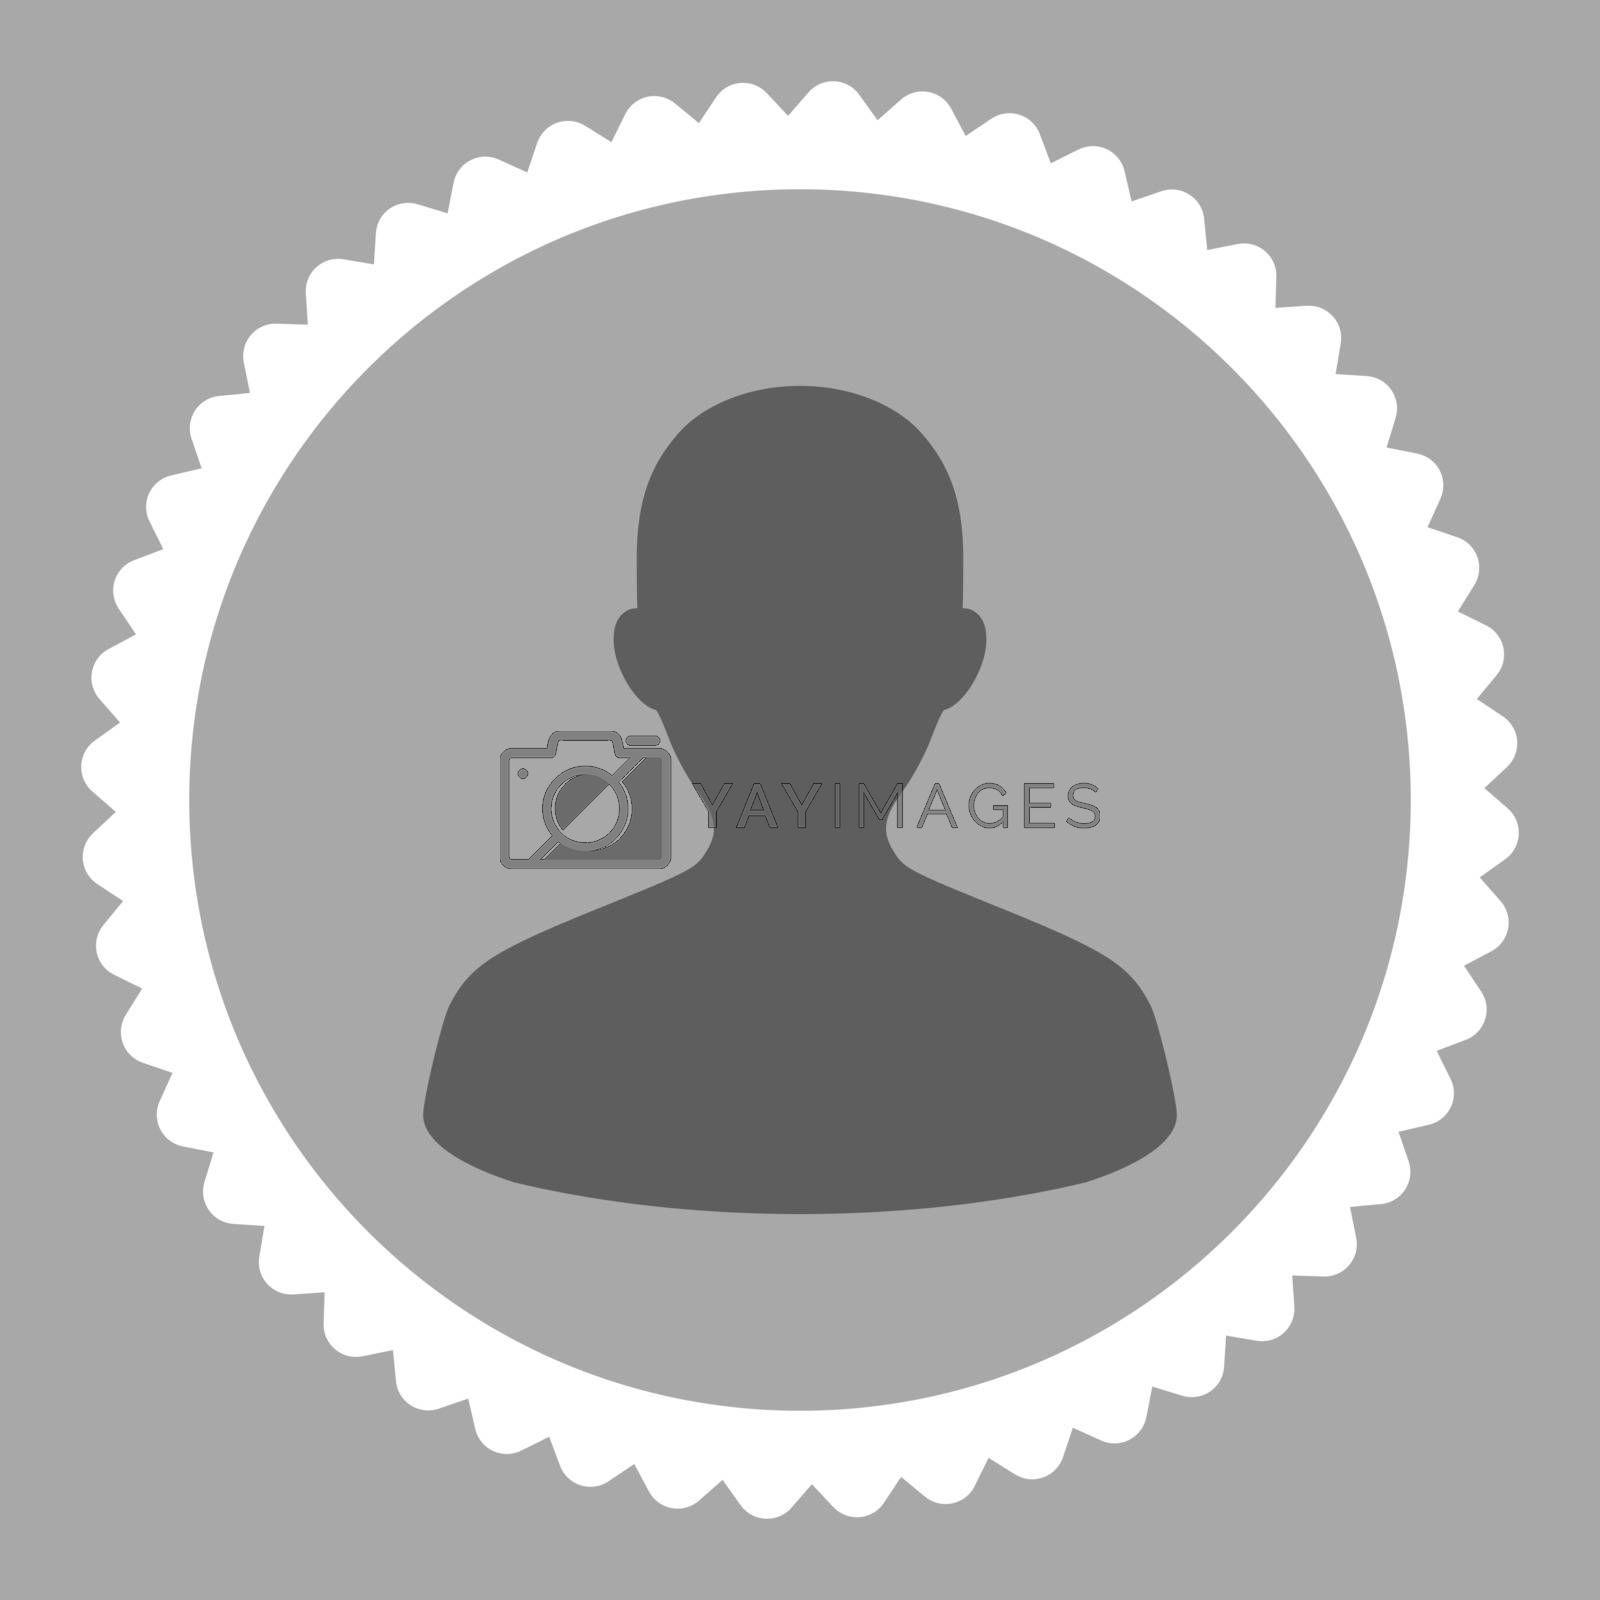 User flat dark gray and white colors round stamp icon by Aha-Soft